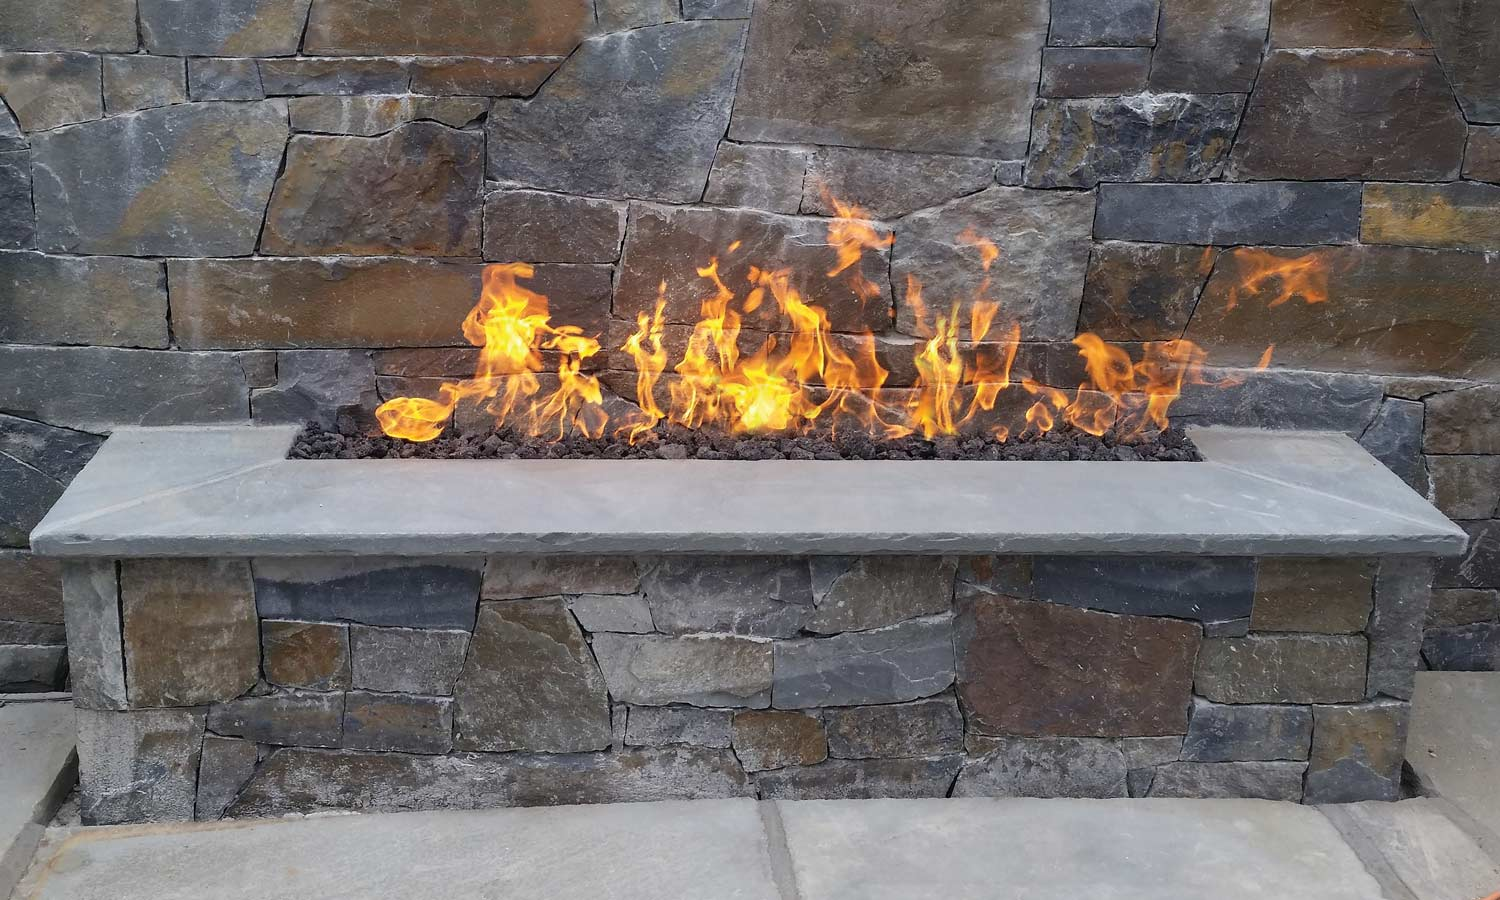 Horizontal Warming Pit at Chim Chimney Fireplace Pool & Spa